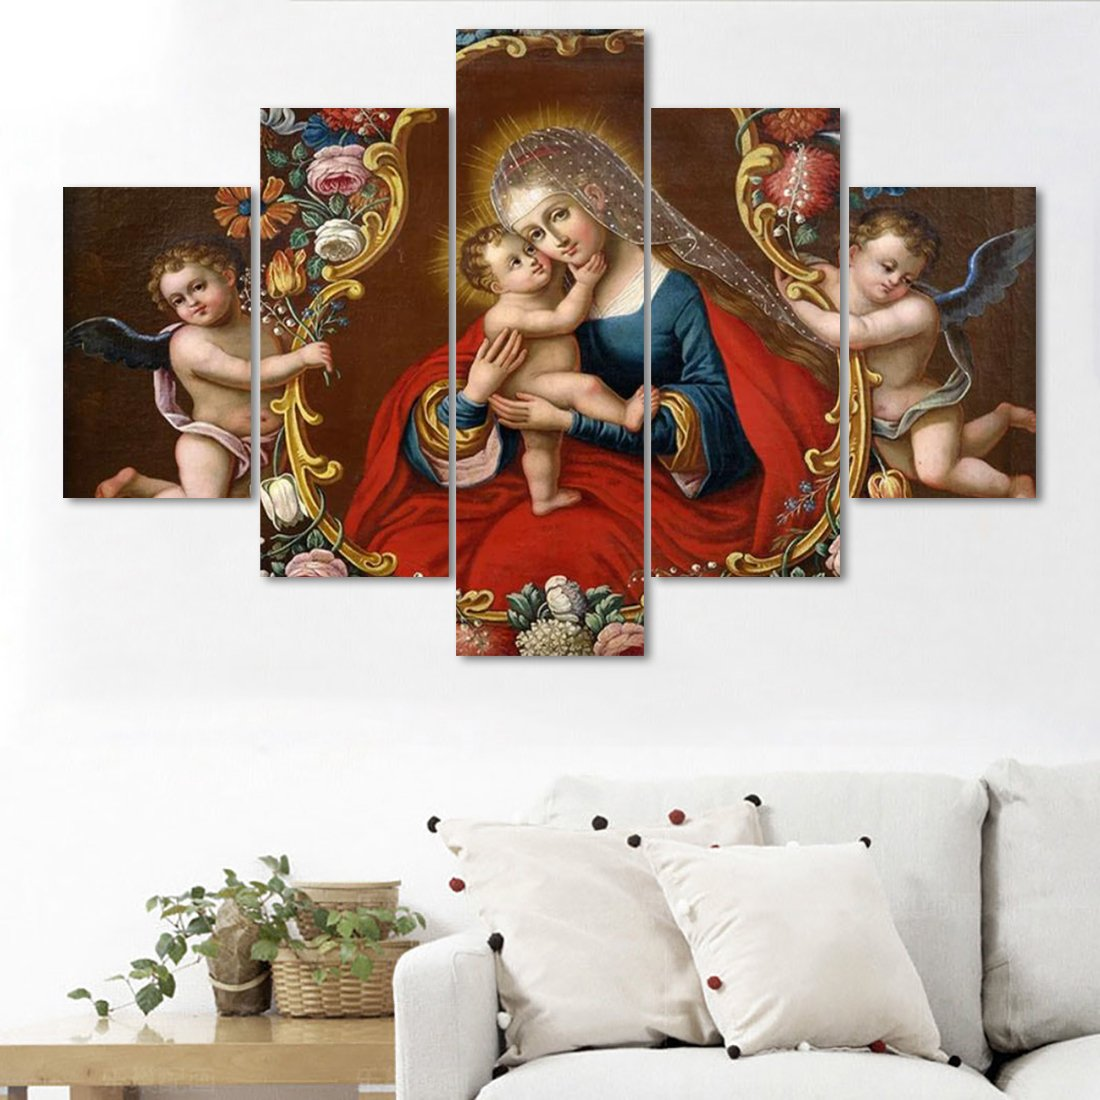 Painting on Canvas Modern Painting Wall Decor of Vigin Mary with baby Jesus Artwork Wall Art 5 PCS Home Decoration for Living Room Pictures HD Printed Framed Giclee Ready to Hang(60''Wx40''H)